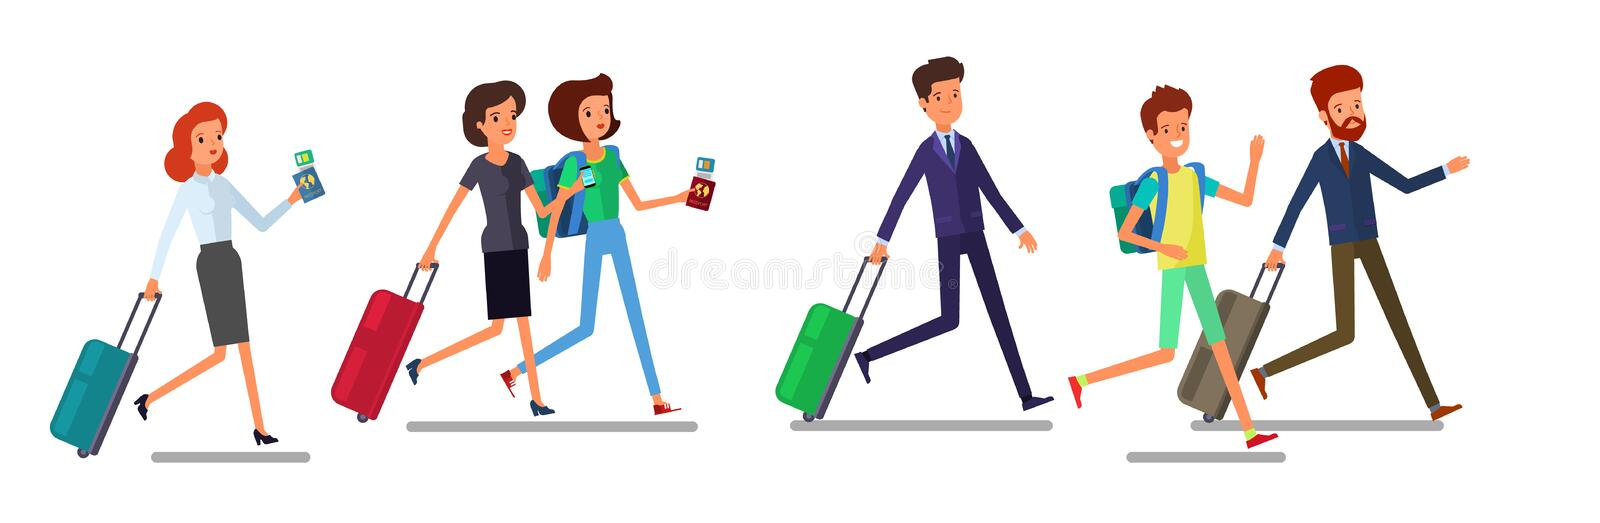 Tourist man and woman running. Traveling people in trip wear with luggage hurry, late for plane or registration. Front royalty free illustration